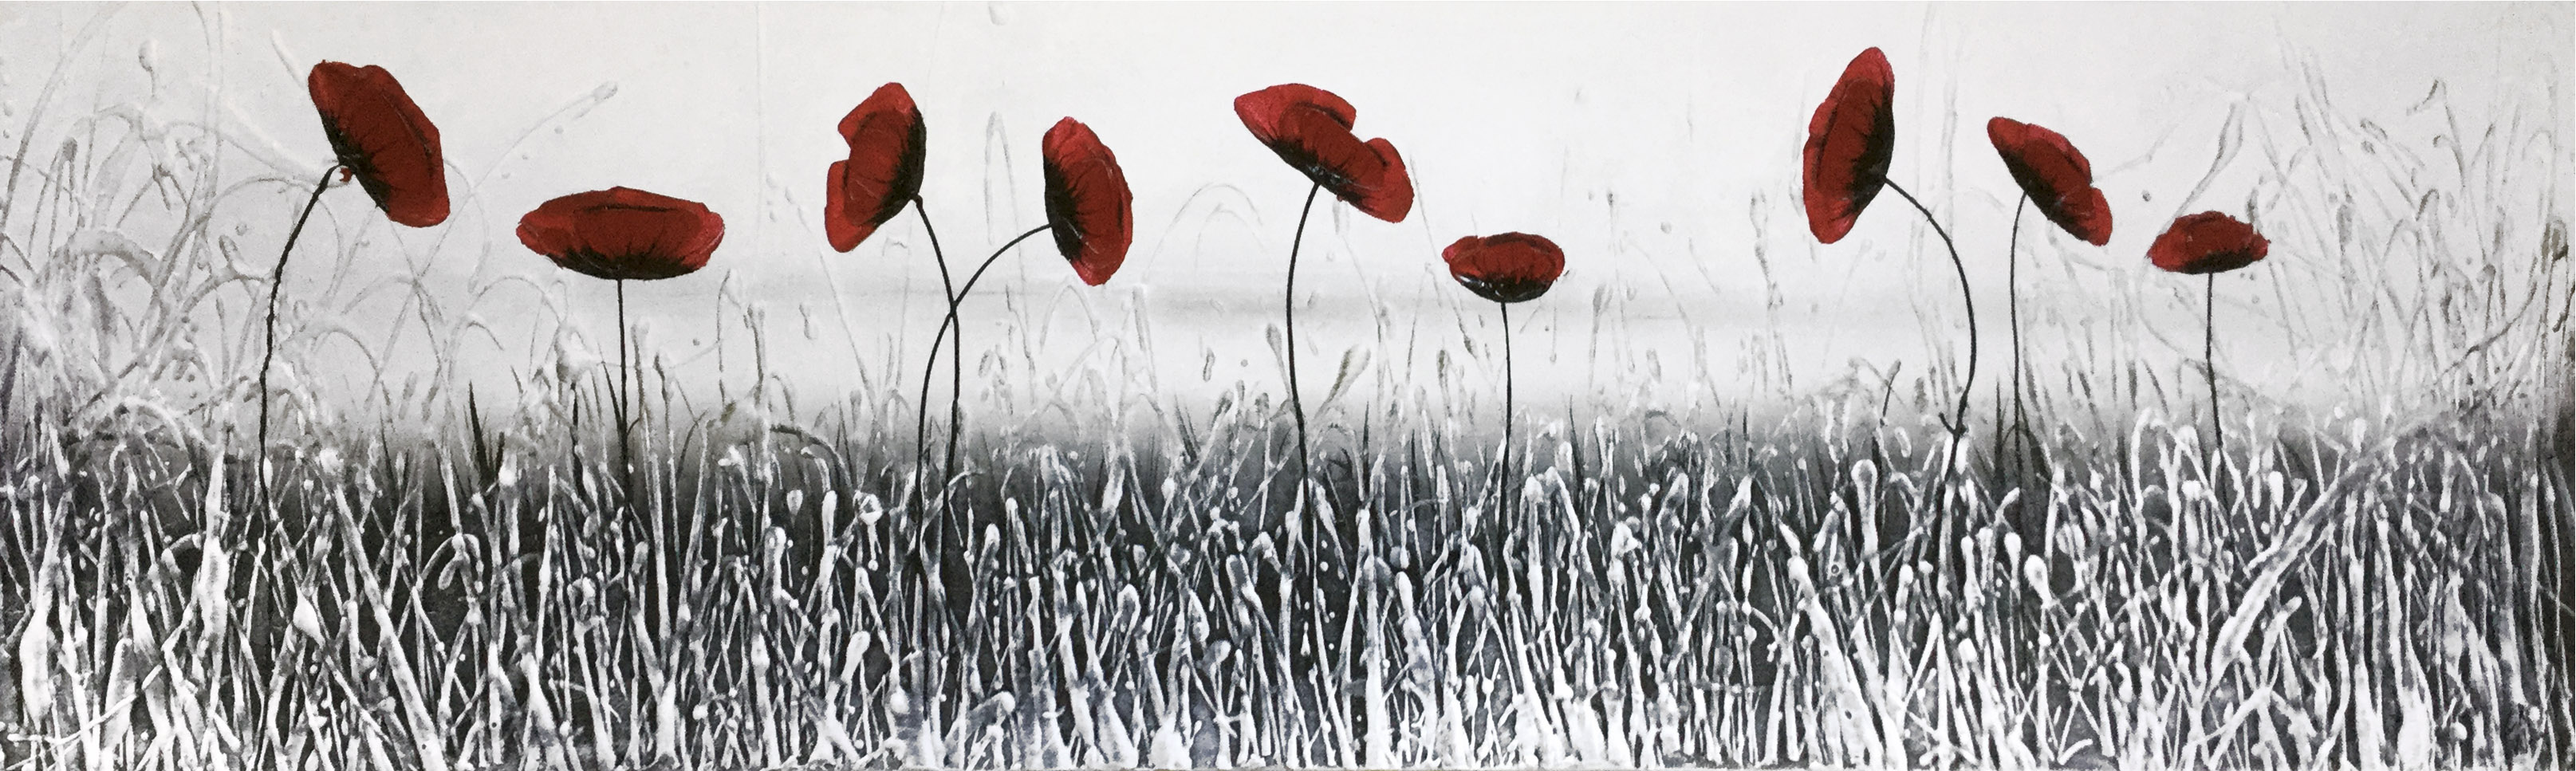 Iced Poppies By Ck Wood